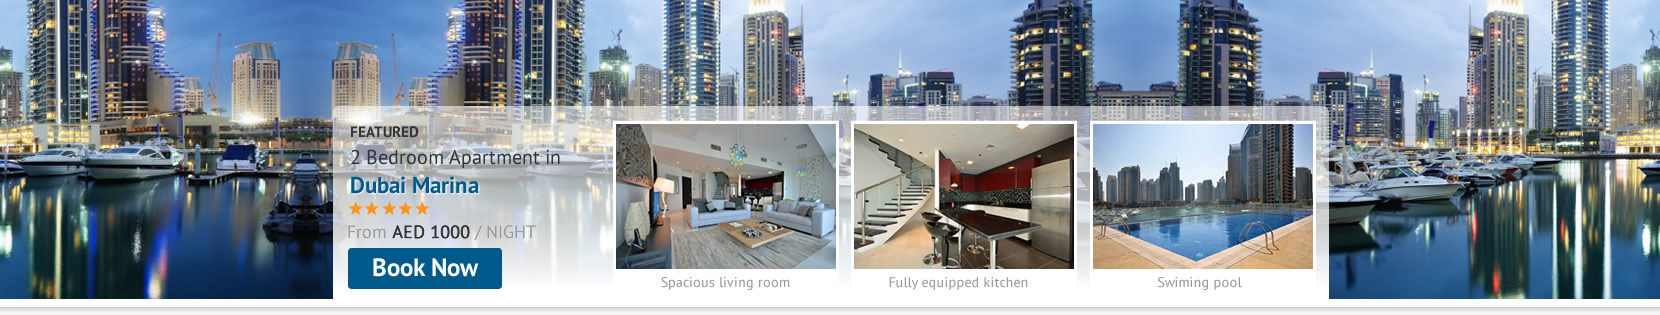 Enjoy waterfront living staying at Dubai Marina Holiday Rental Apartments